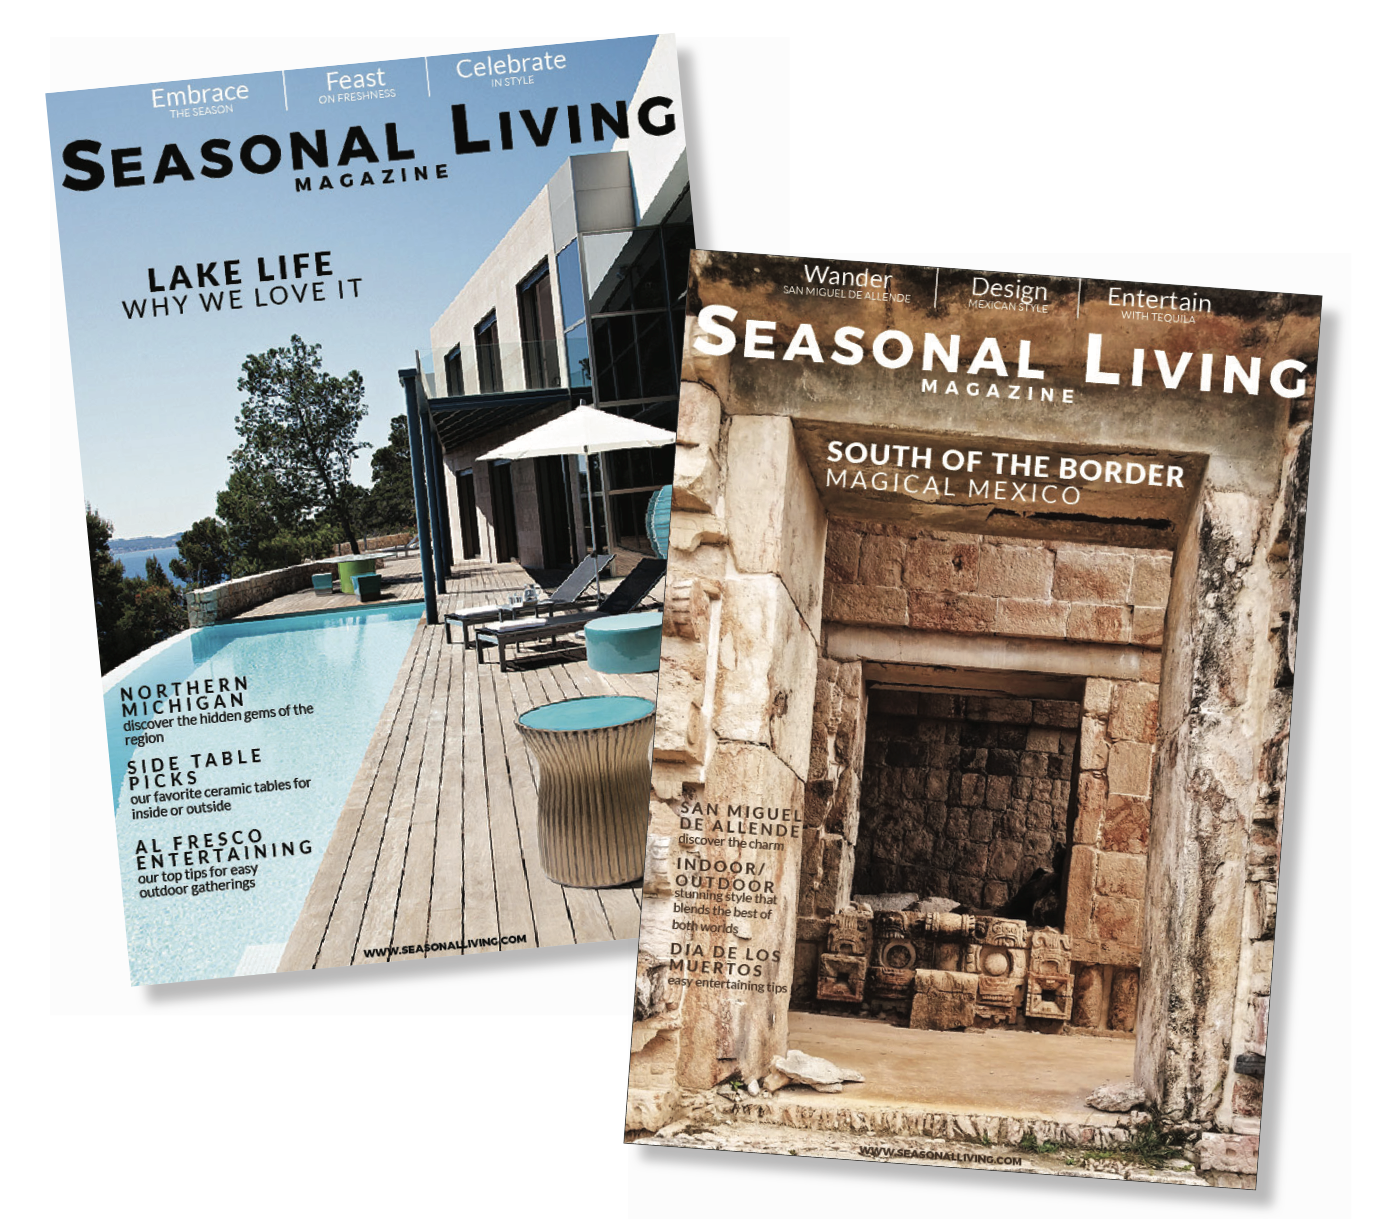 best online magazines for home decor - Seasonal Living Magazine